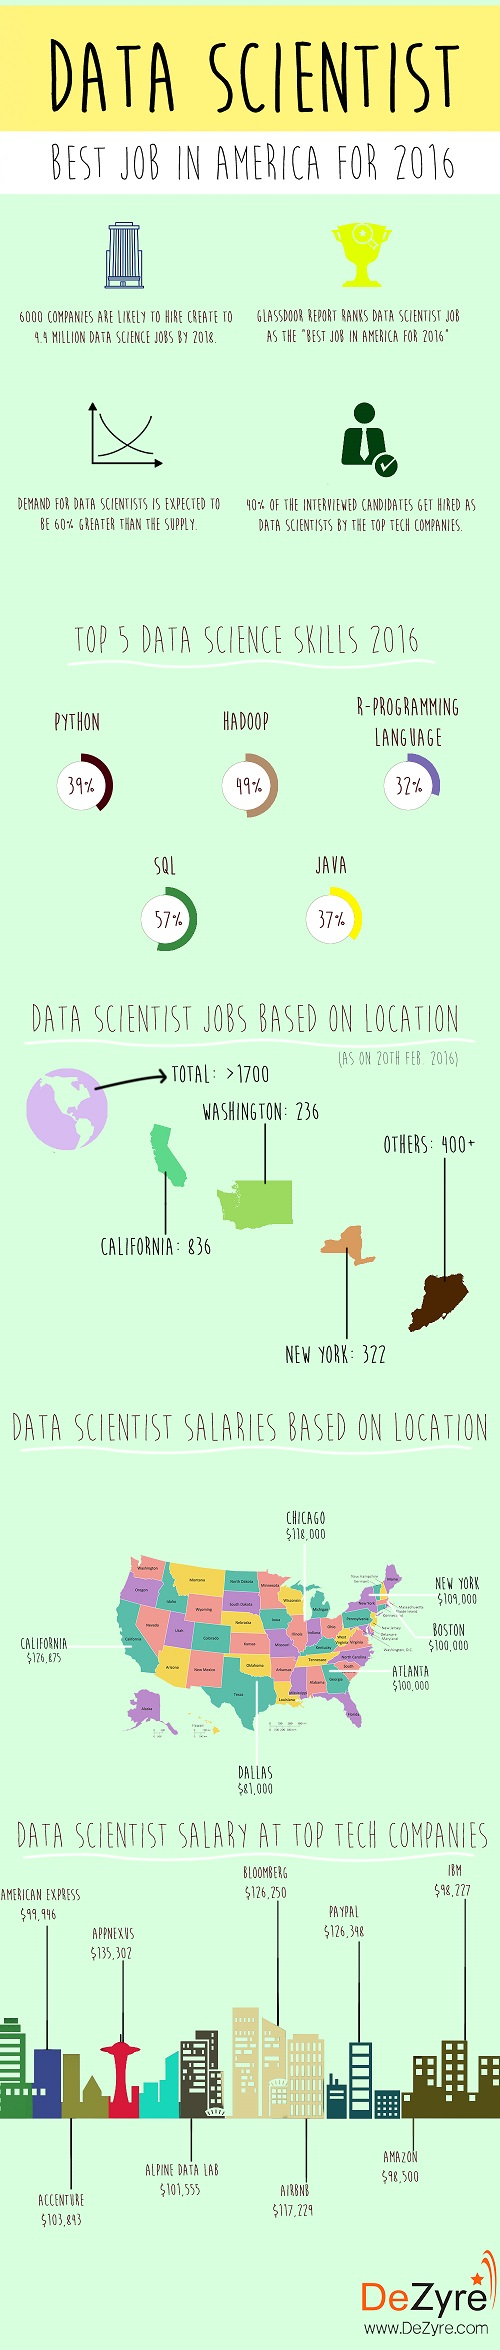 Data Scientist Salary 2016